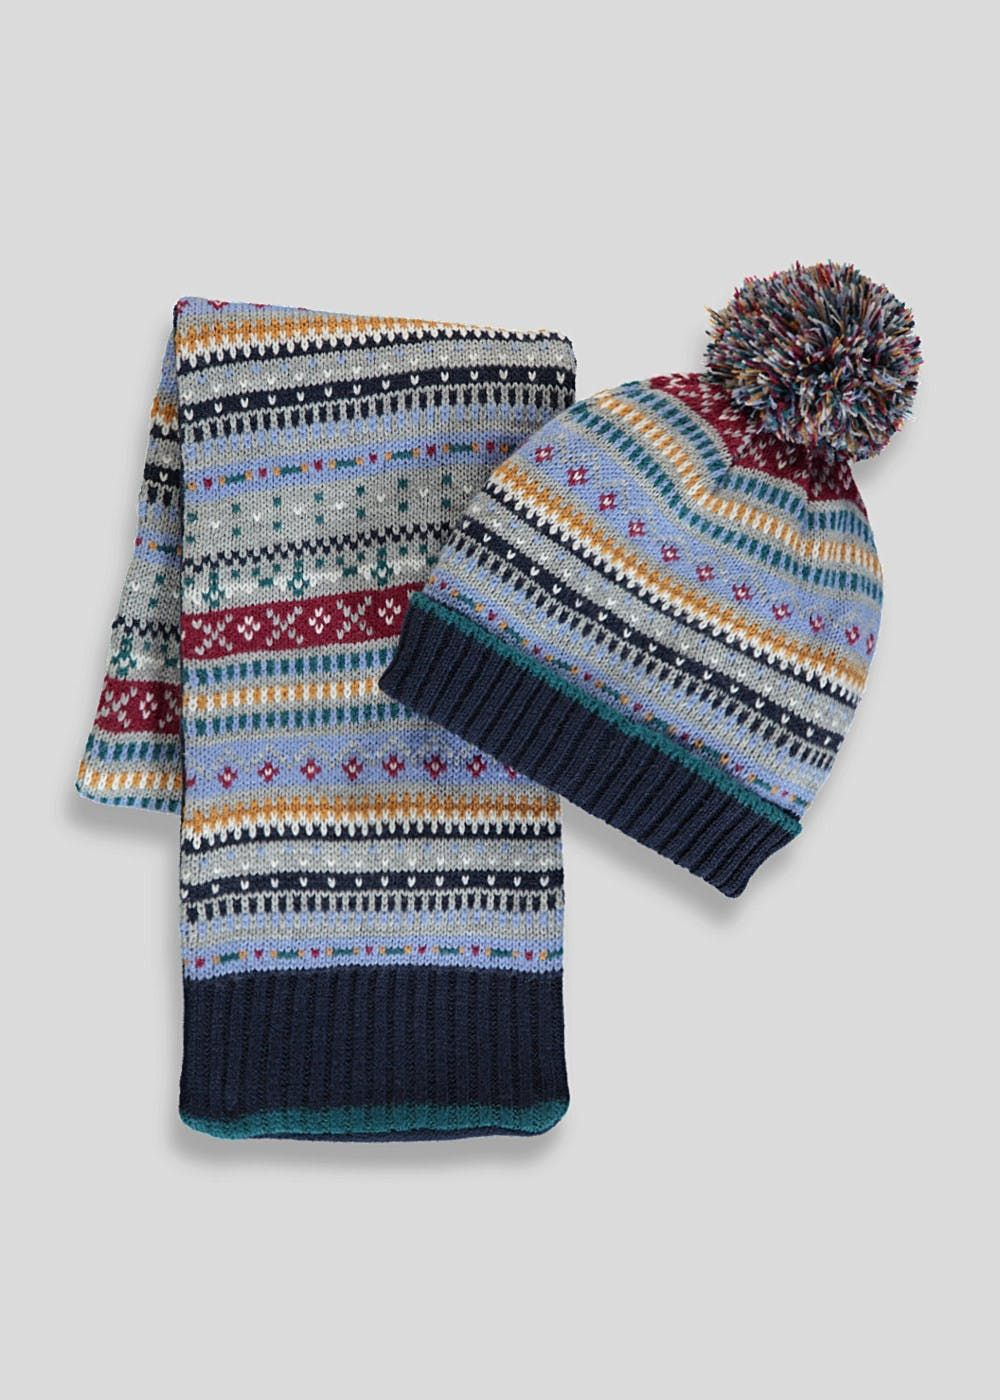 31a42d949d4ae4 ... 73c6acf0 Kids Fair Isle Bobble Hat & Scarf Set (12mths-4yrs) – Navy ...